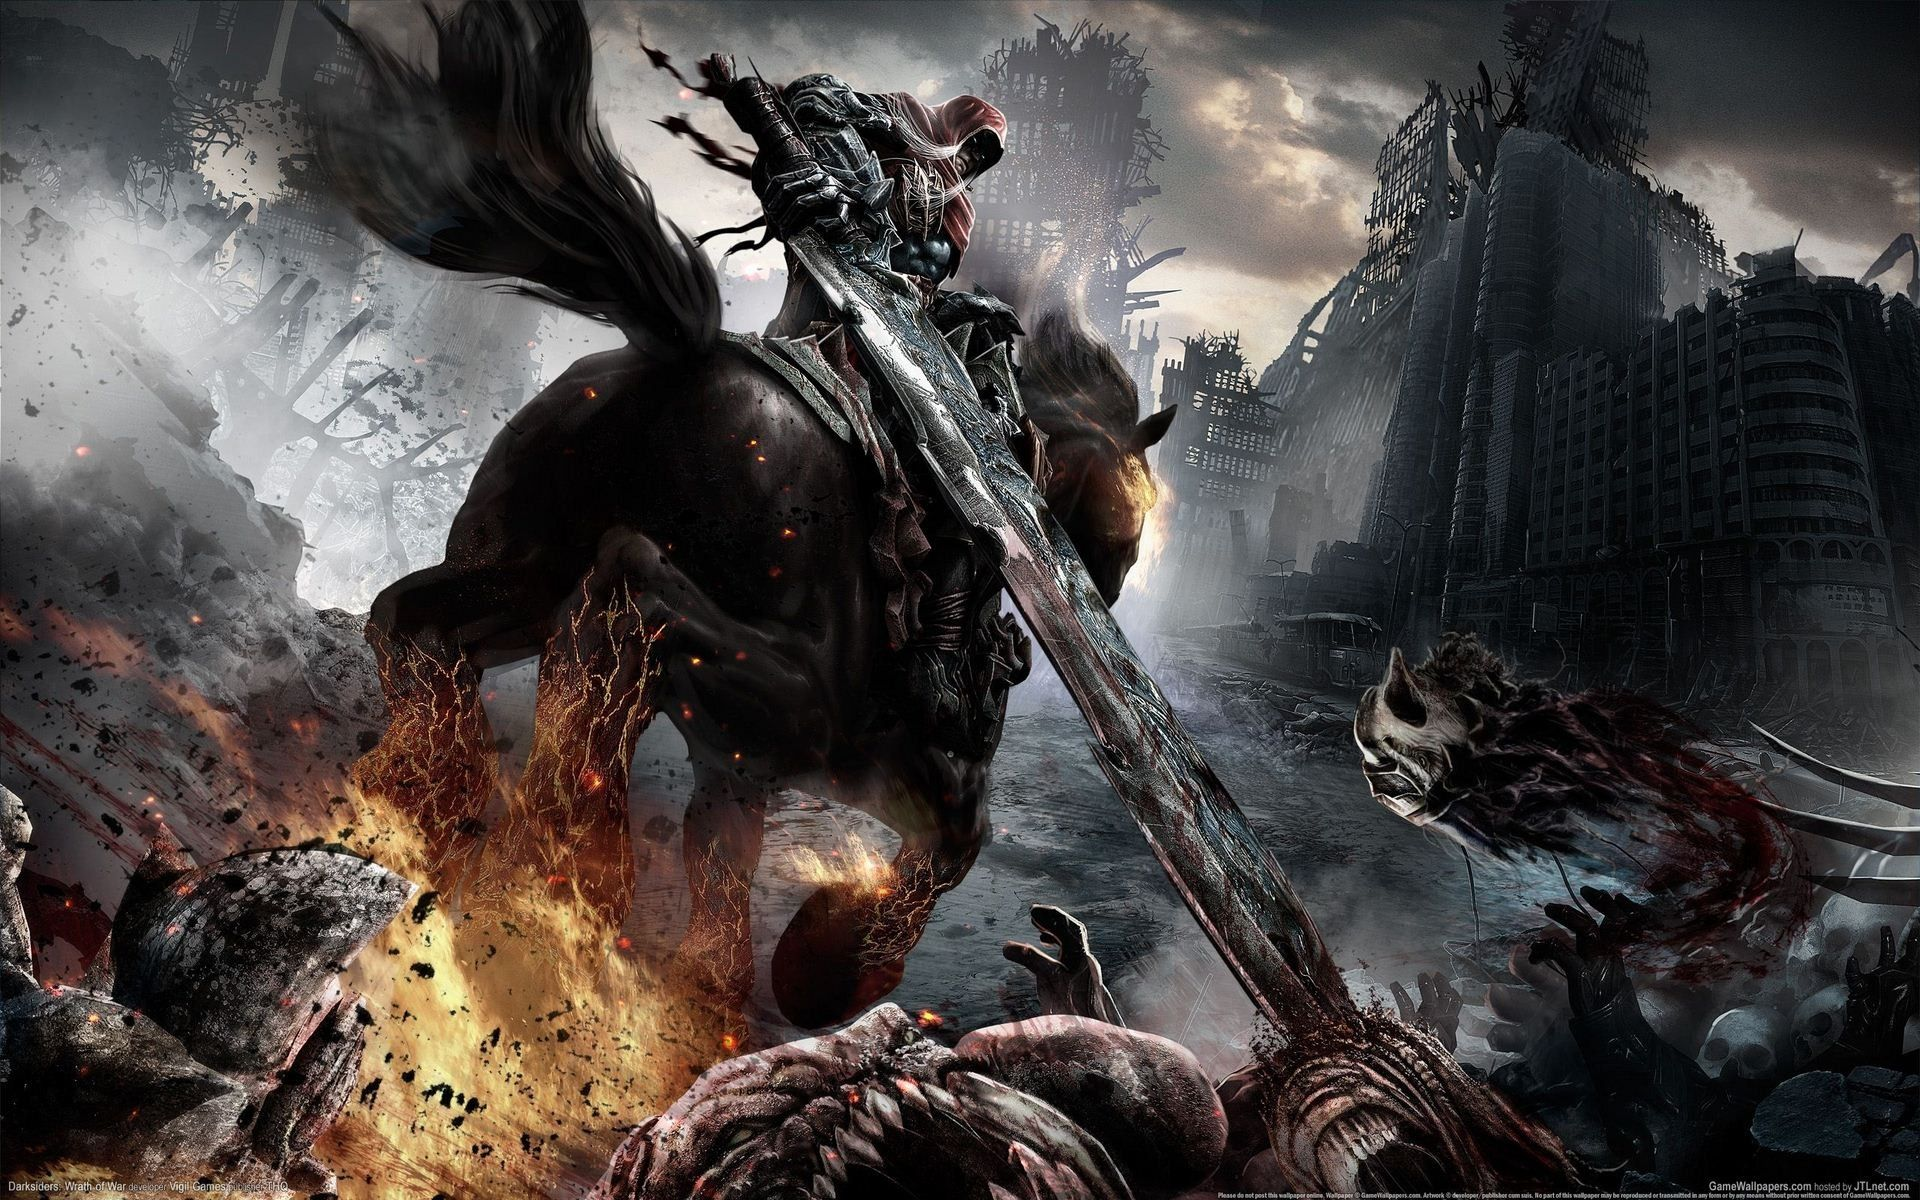 Darksiders Wrath Of War Hd Wallpaper 10 1920x1200 Hero Wallpaper Widescreen Wallpaper Pc Games Wallpapers